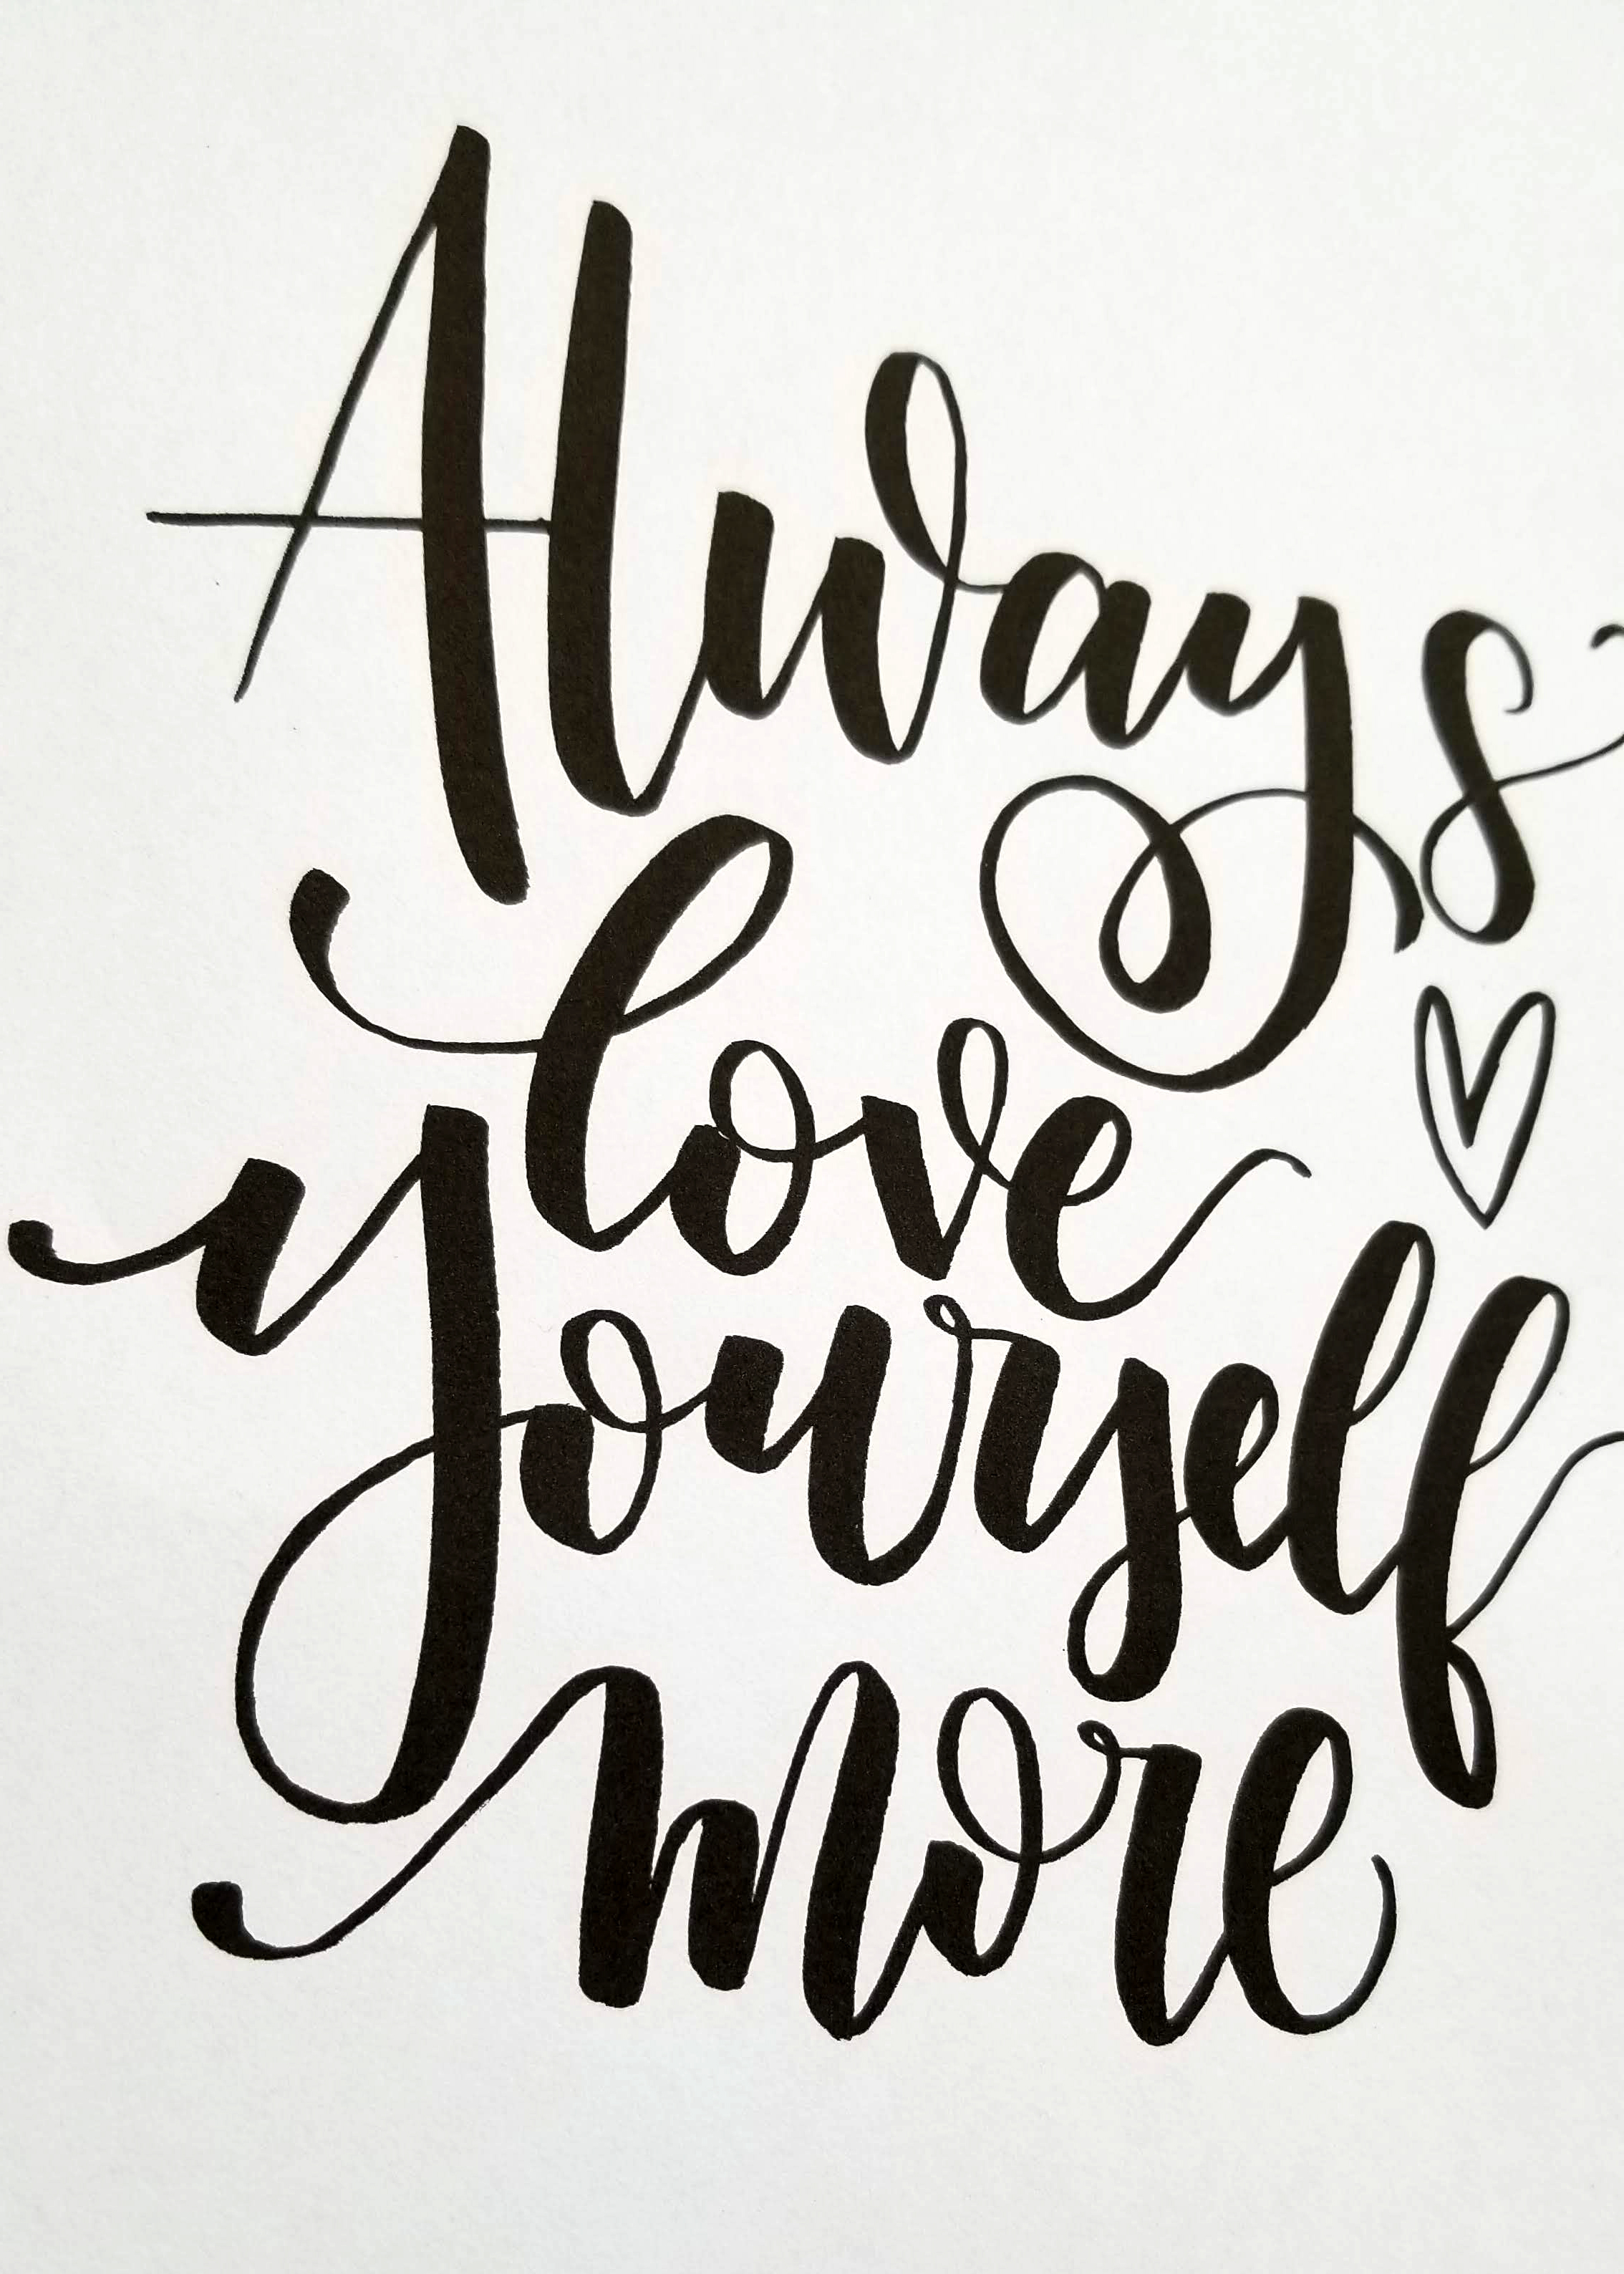 Always love yourself more - CLoseup2